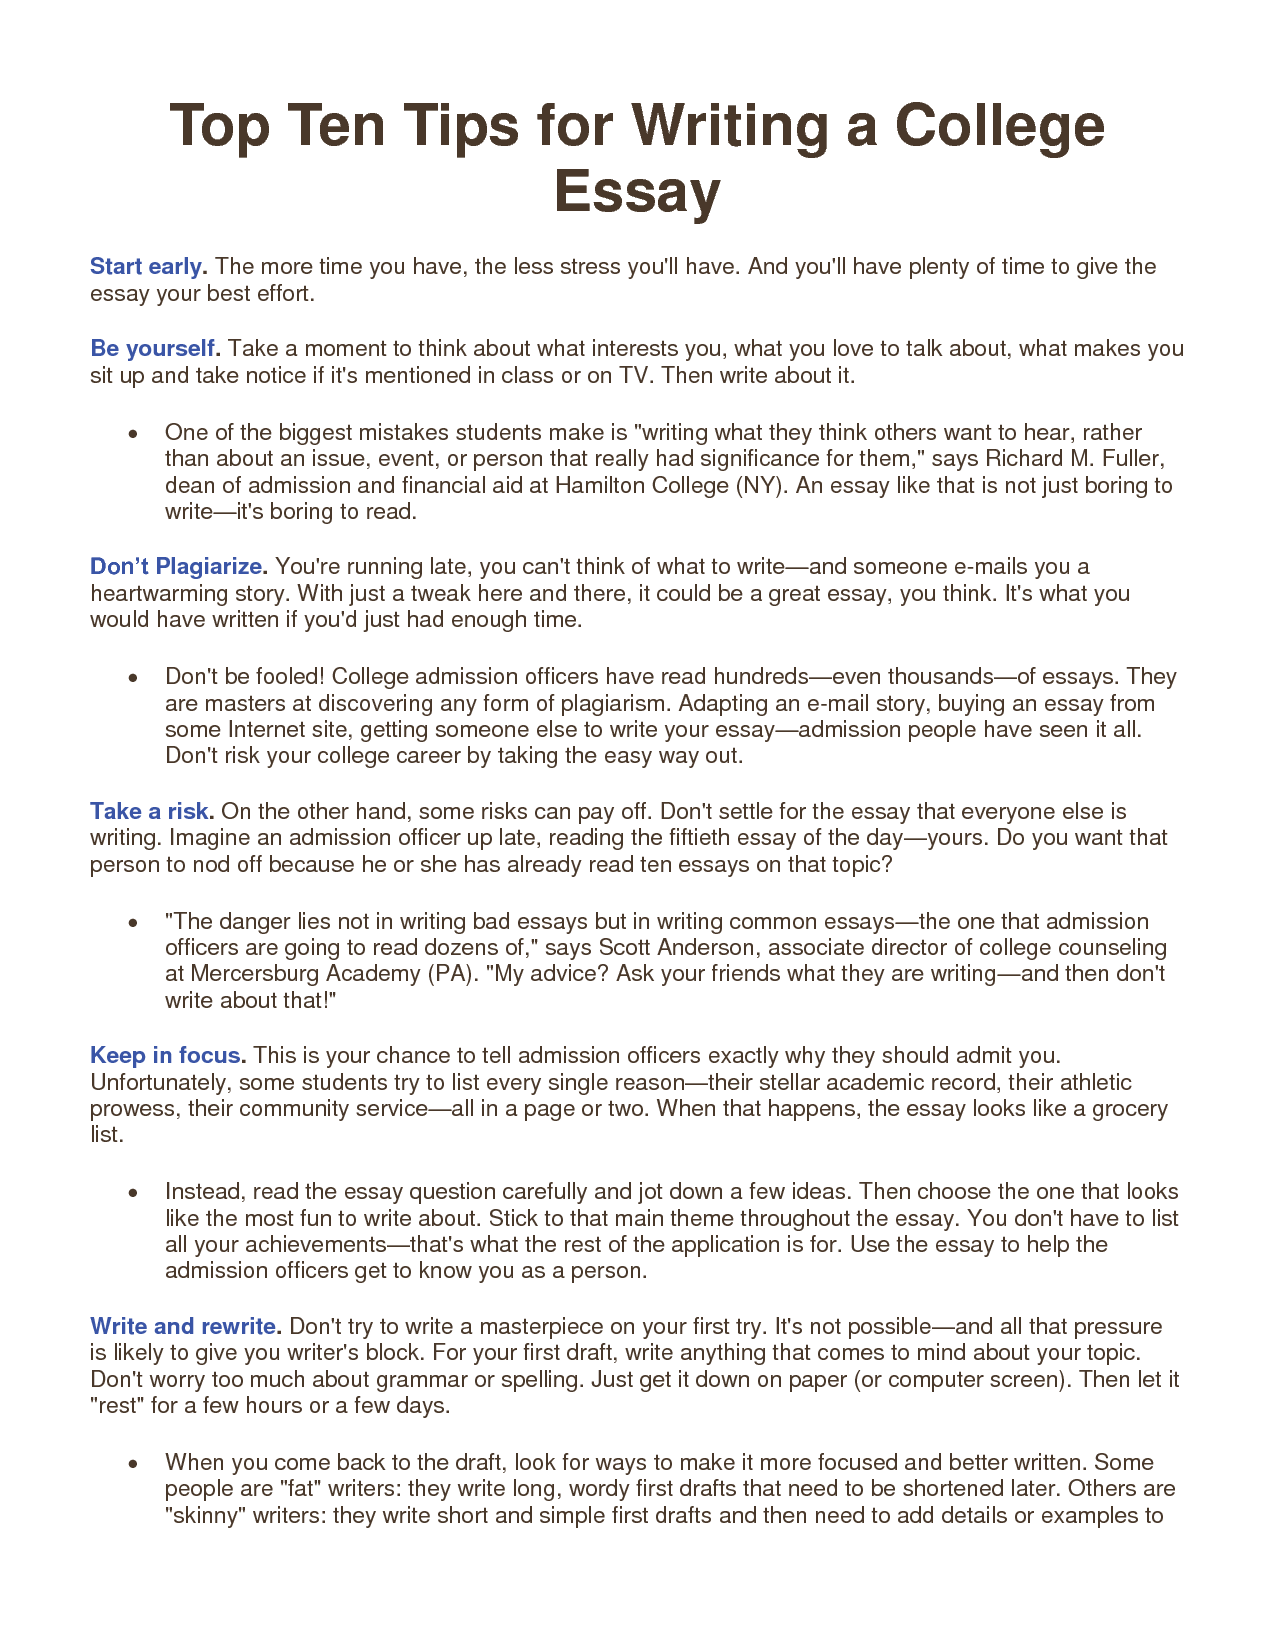 essay tips for college | best writing service